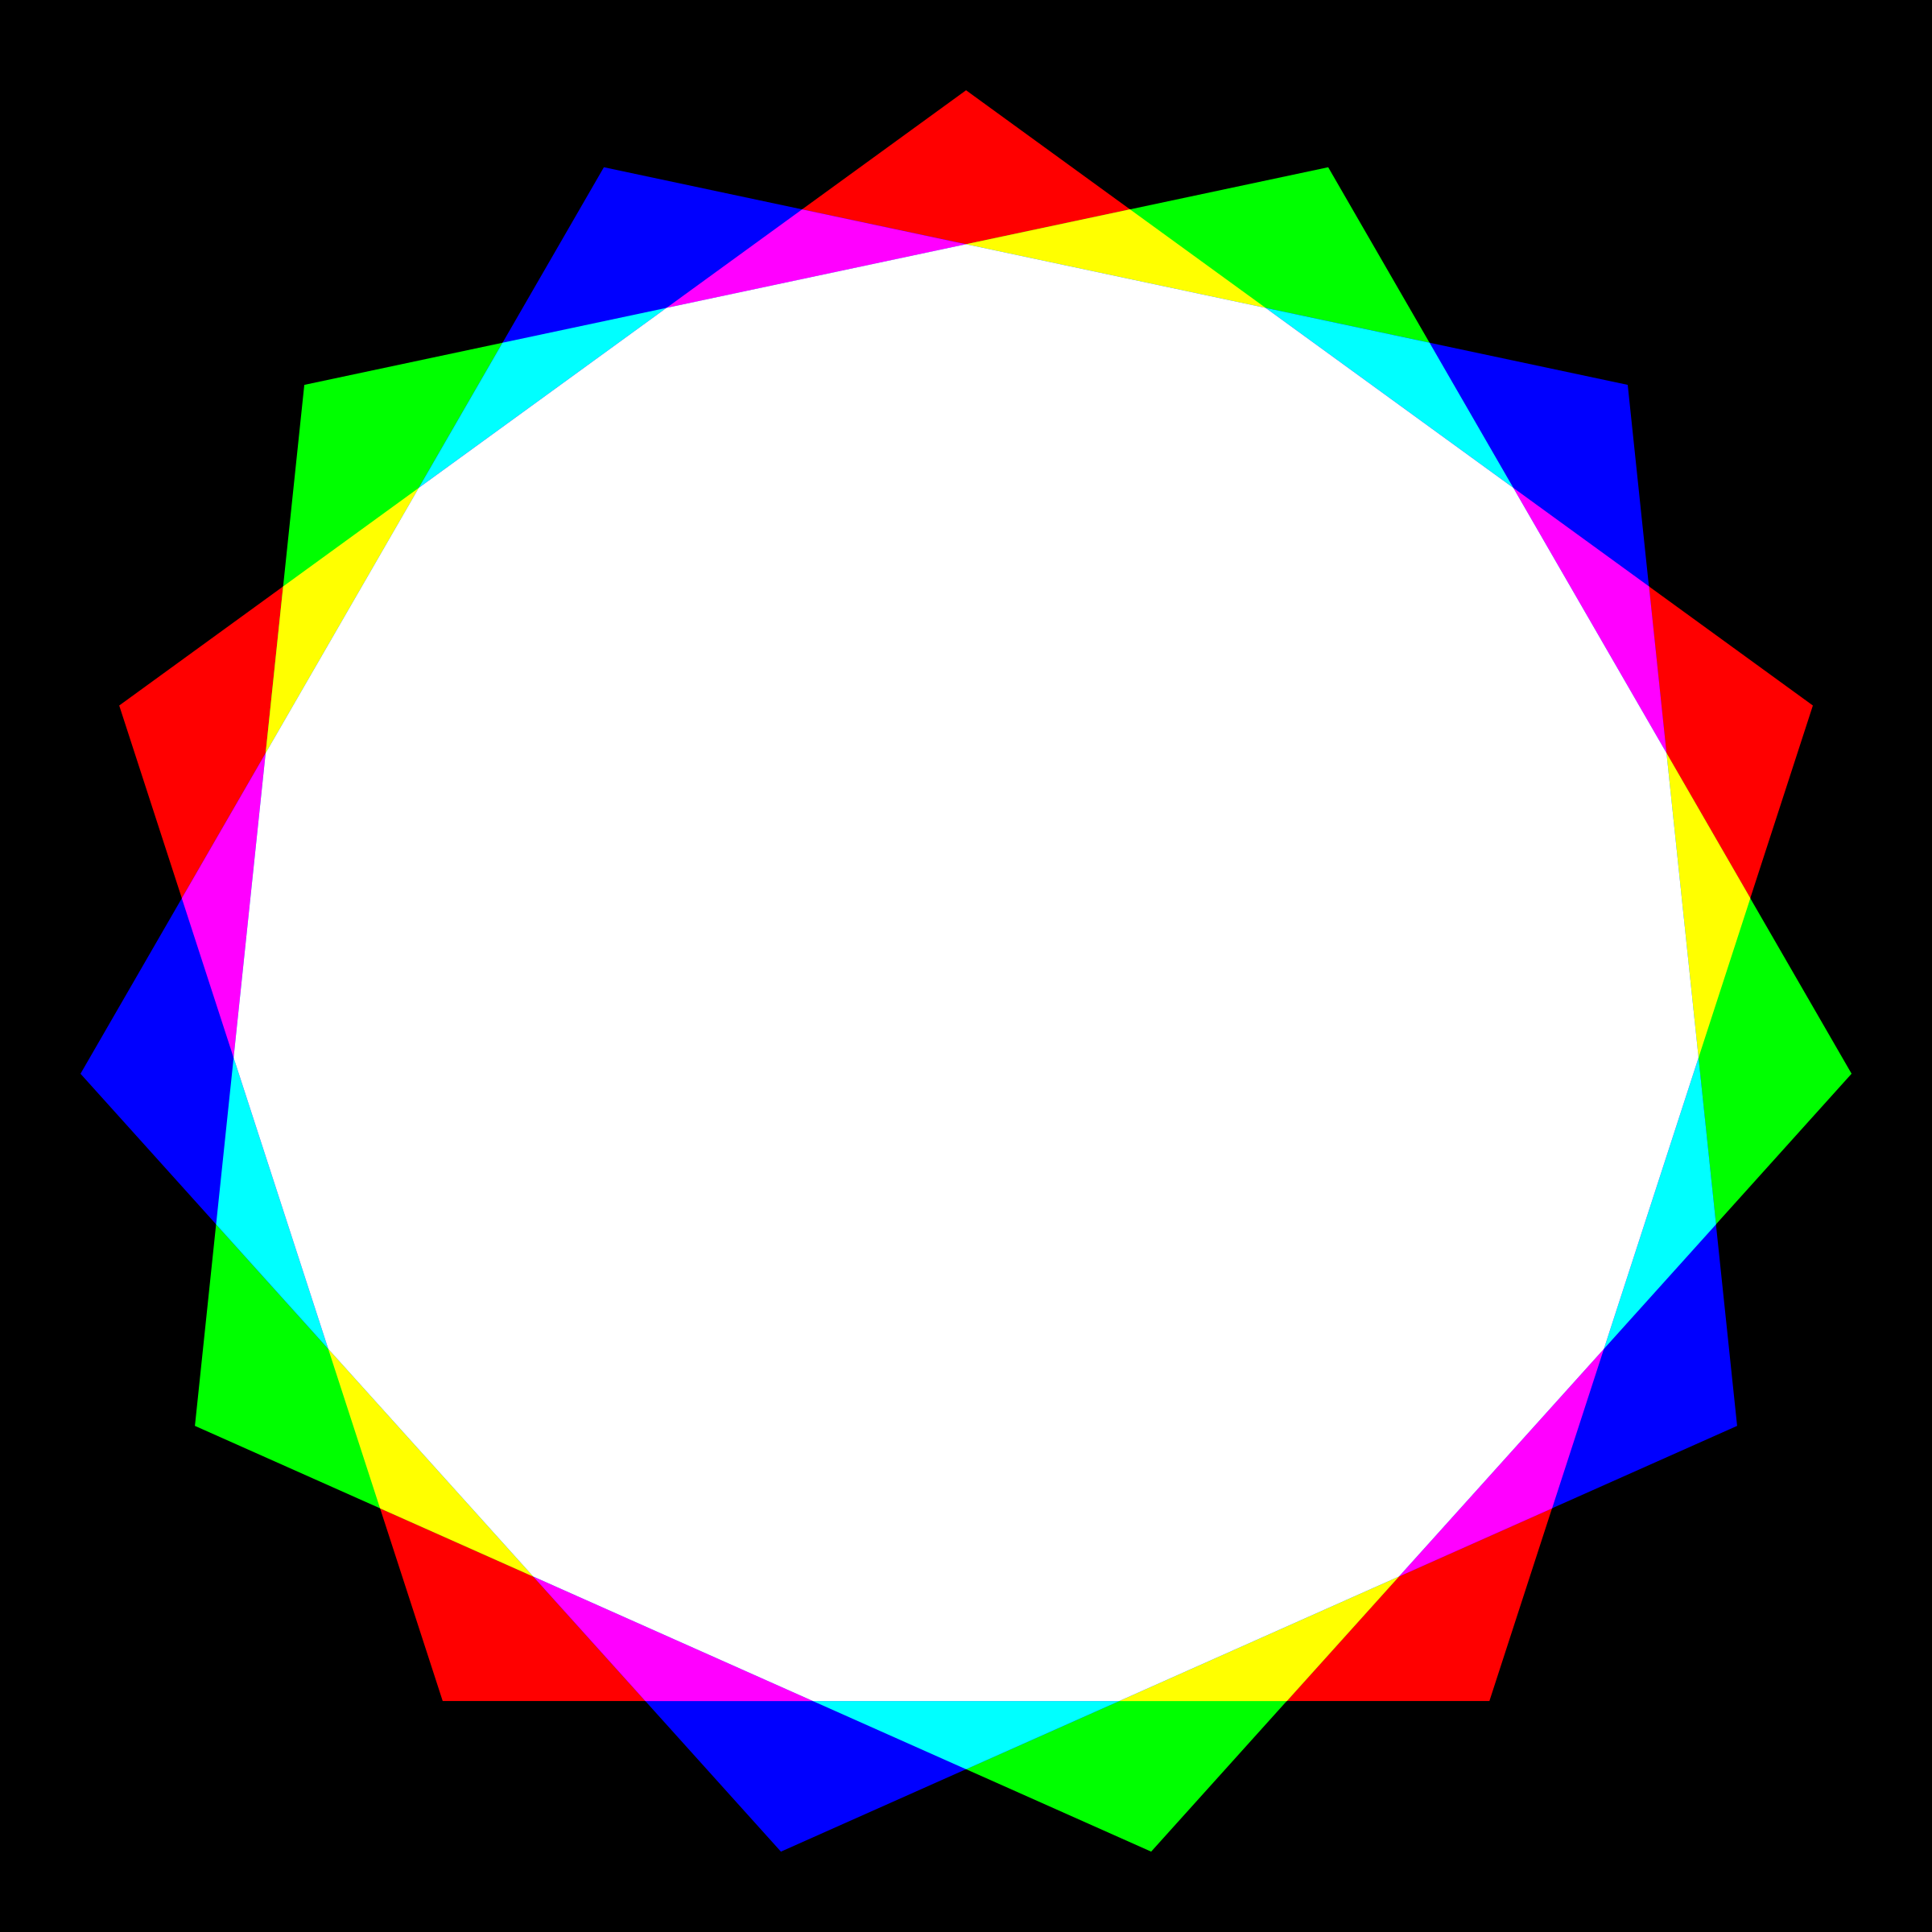 pentadecagon rgb mix by 10binary